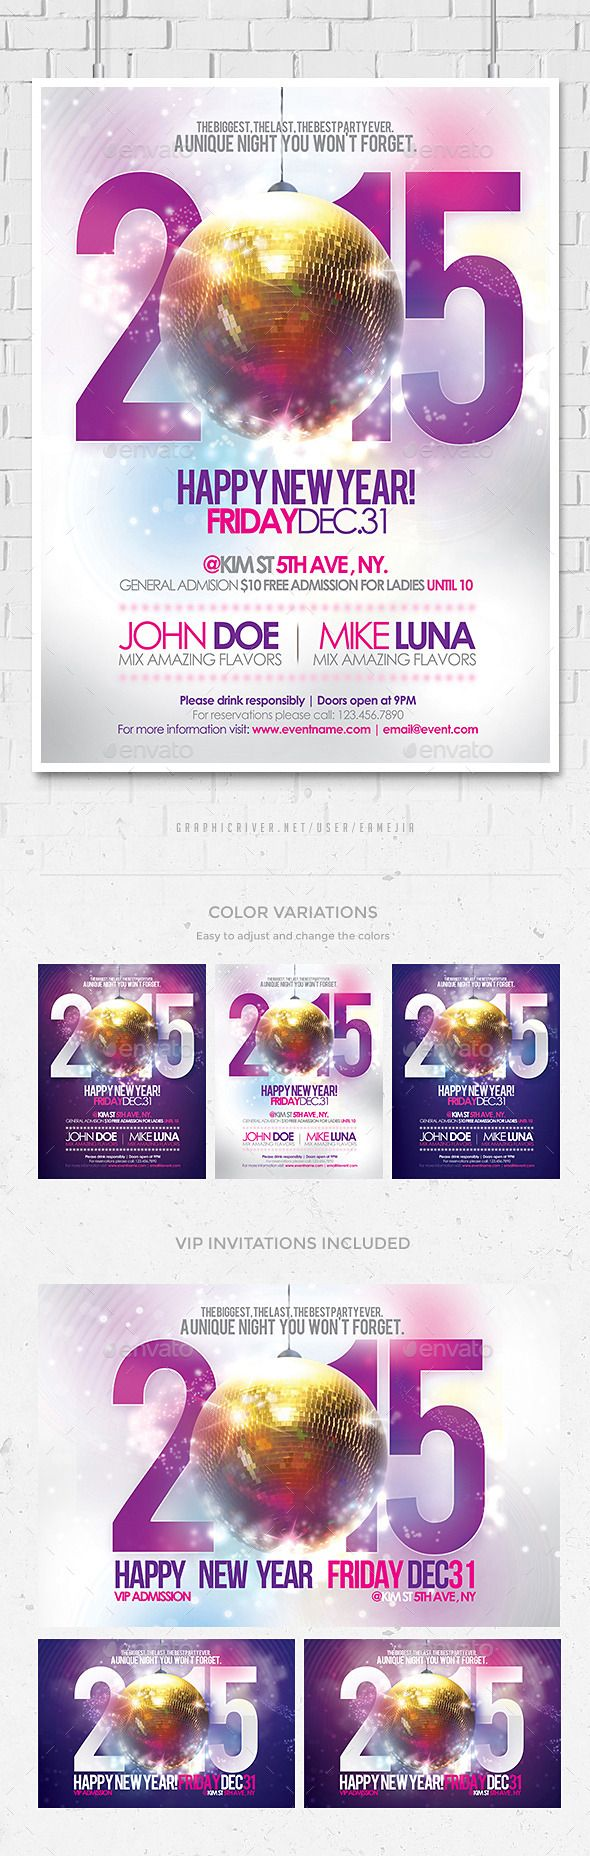 Best New Year Party Flyer Templates Images On   Party